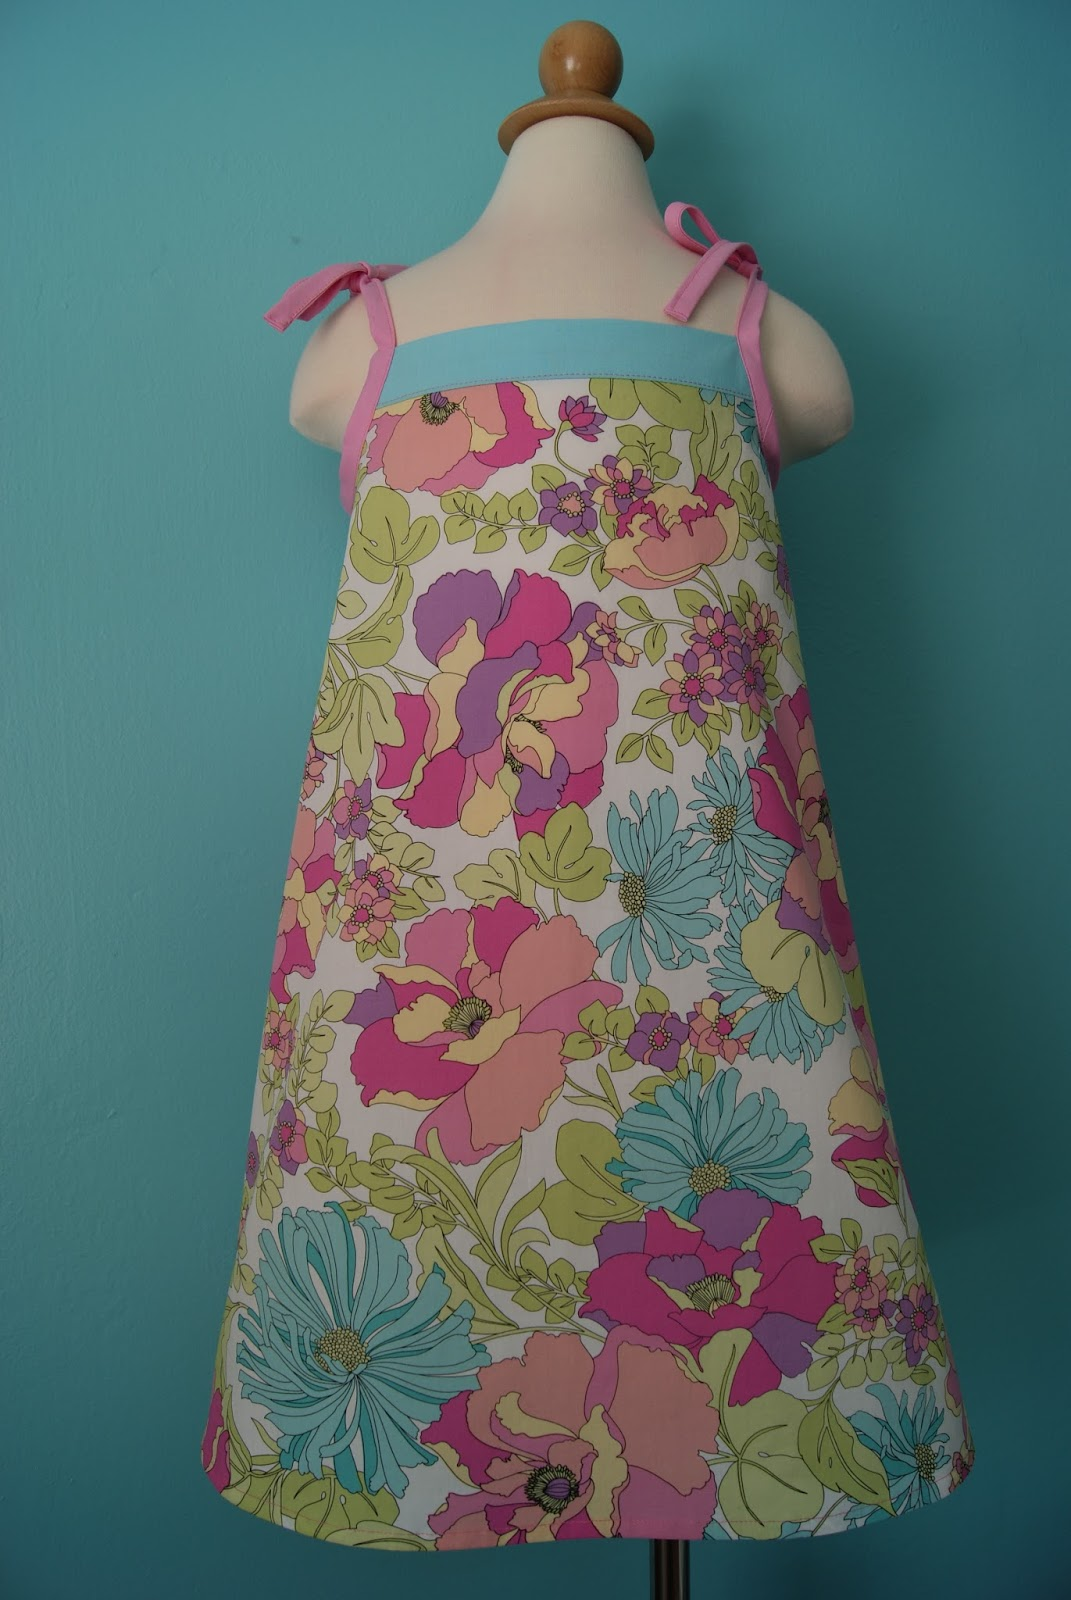 Robin's eggs blue and bubble gum pink Popover Sundress by nest full of eggs